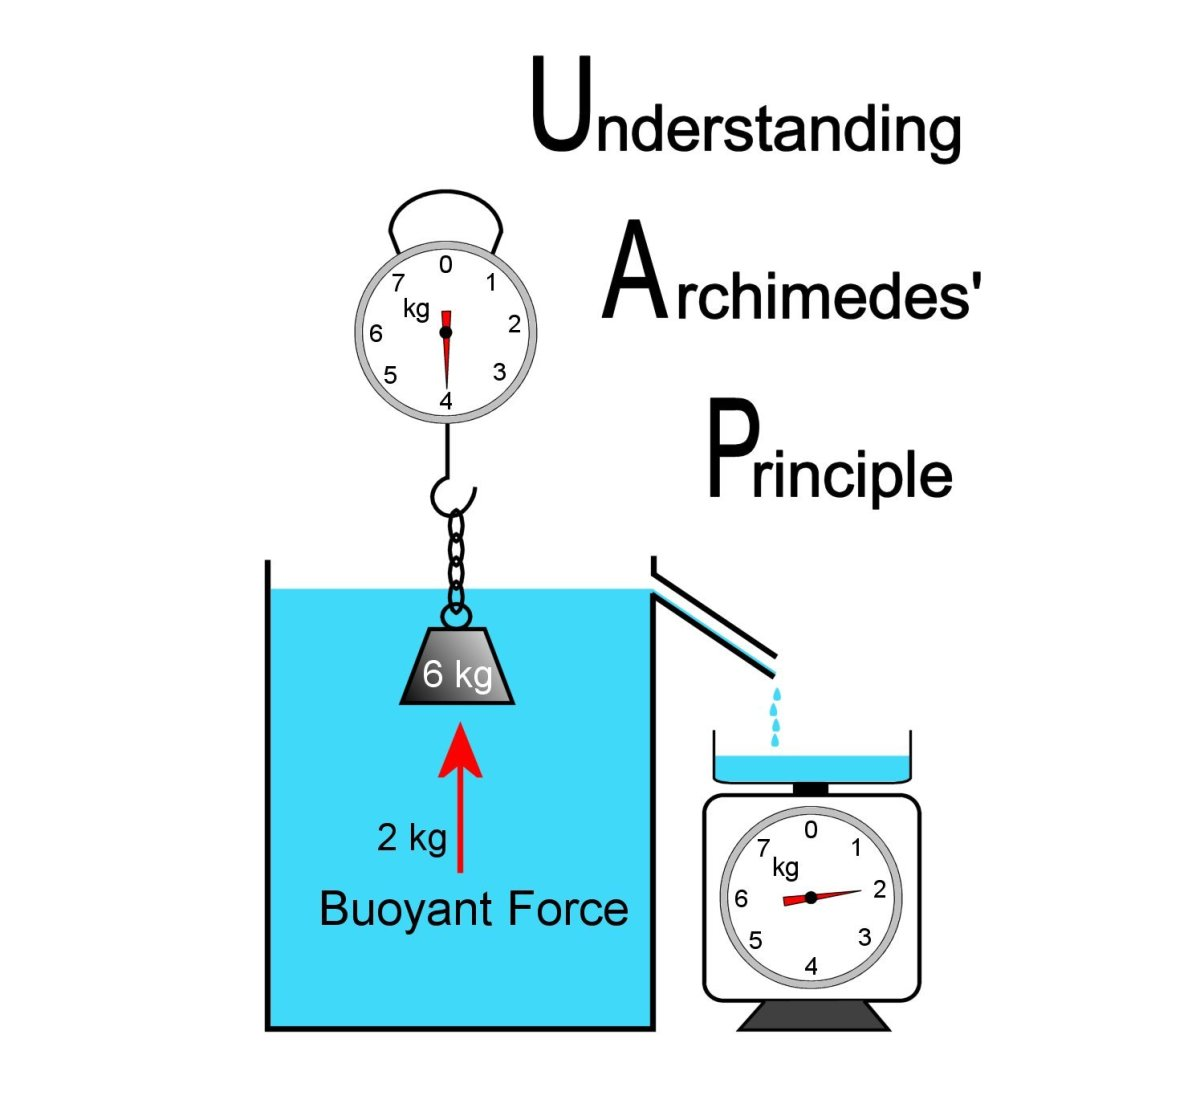 Archimedes' Principle and Understanding Buoyant Force